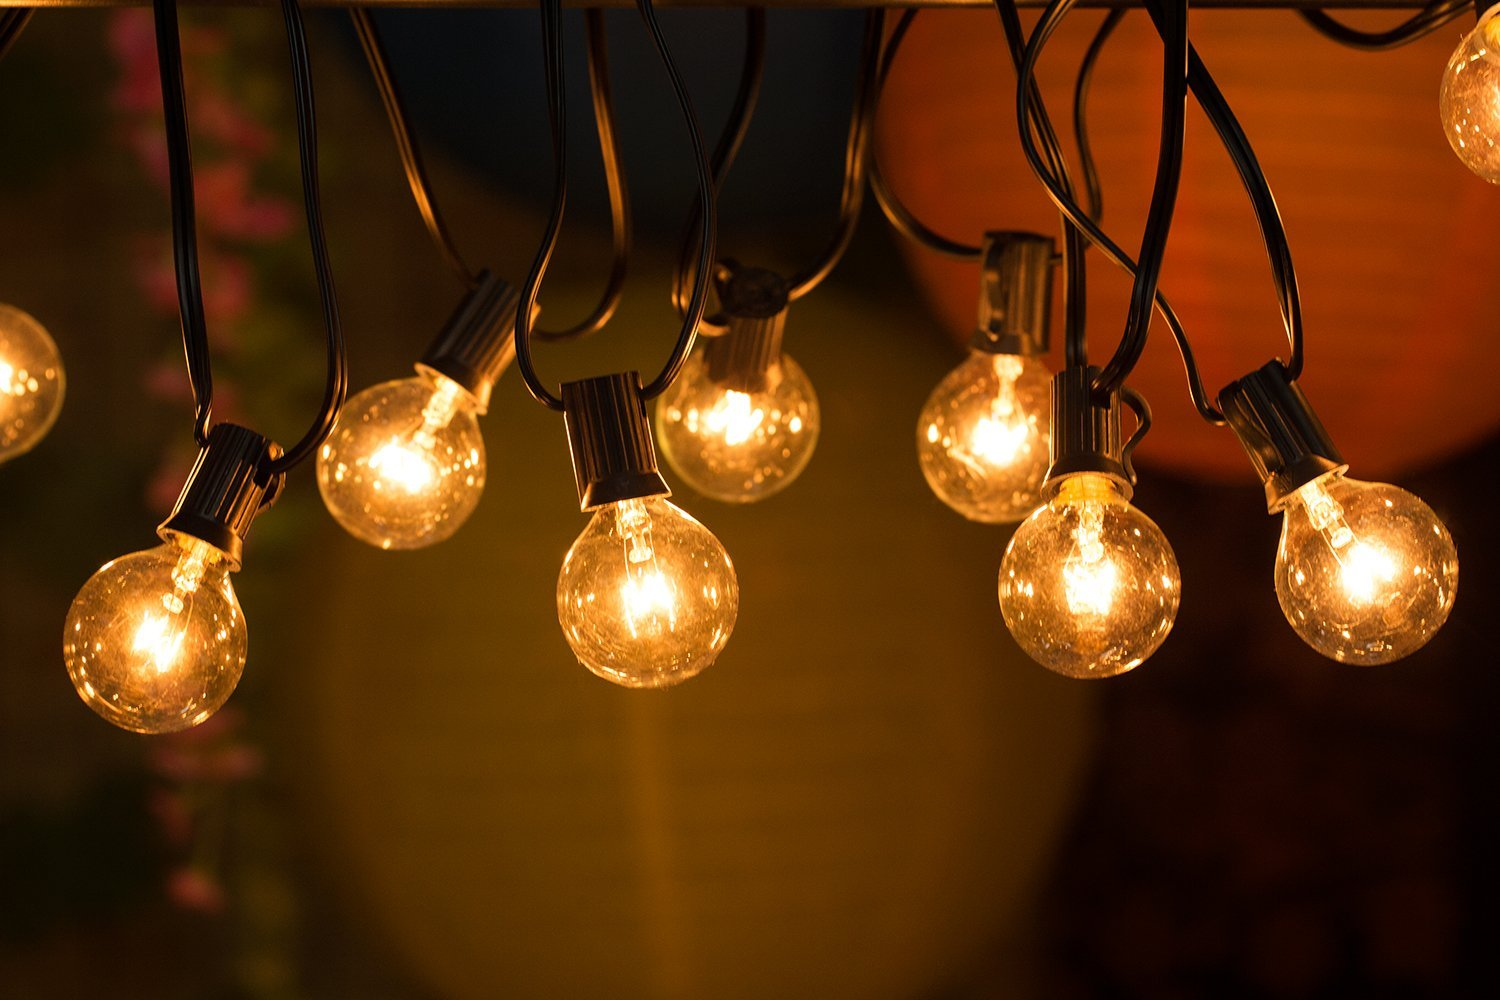 Outdoor vintage patio string lights outdoor designs best outdoor string lights for the patio and garden outsidemodern aloadofball Image collections